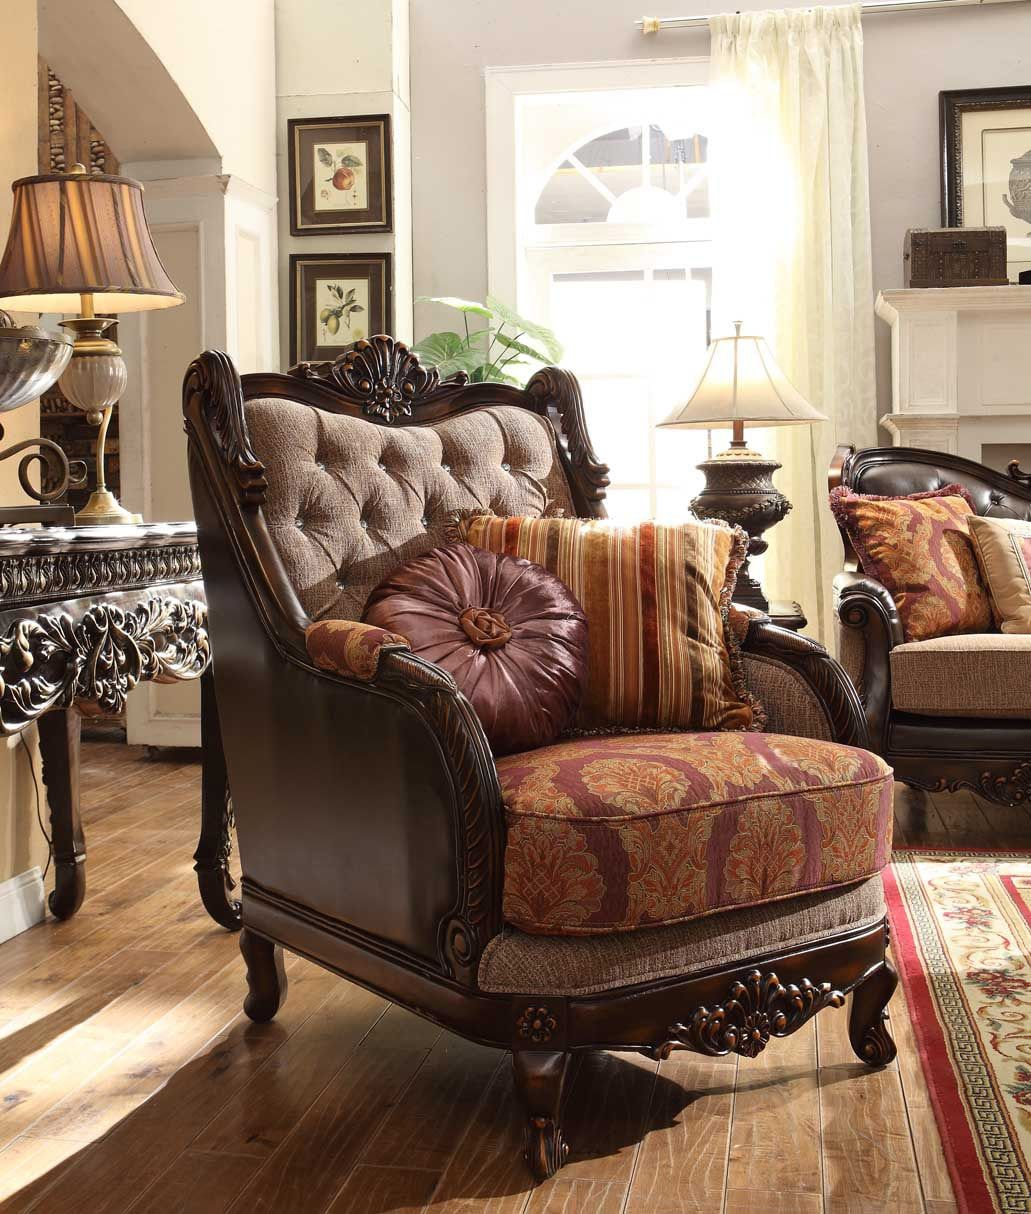 Pin by Naomi Lucas on My Style Living room upholstered